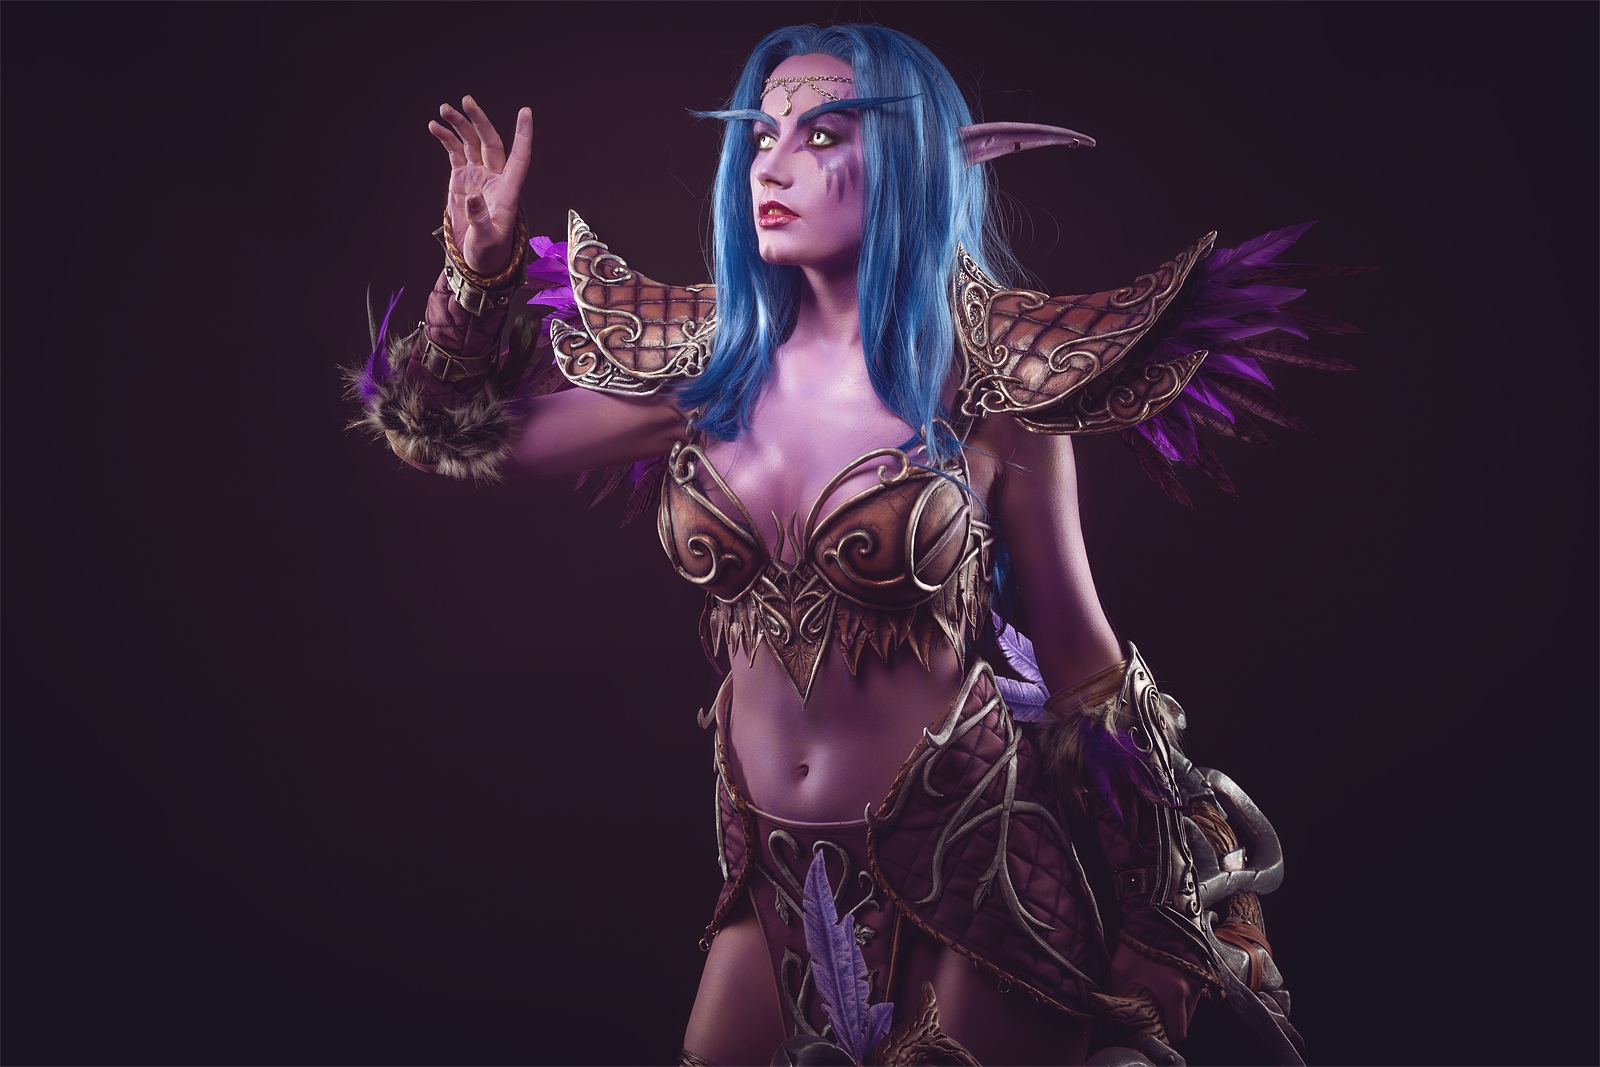 tyrande_whisperwind___night_elf_cosplay_by_narga_lifestream-dbbbcll.png - World of Warcraft World of Warcraft, wow